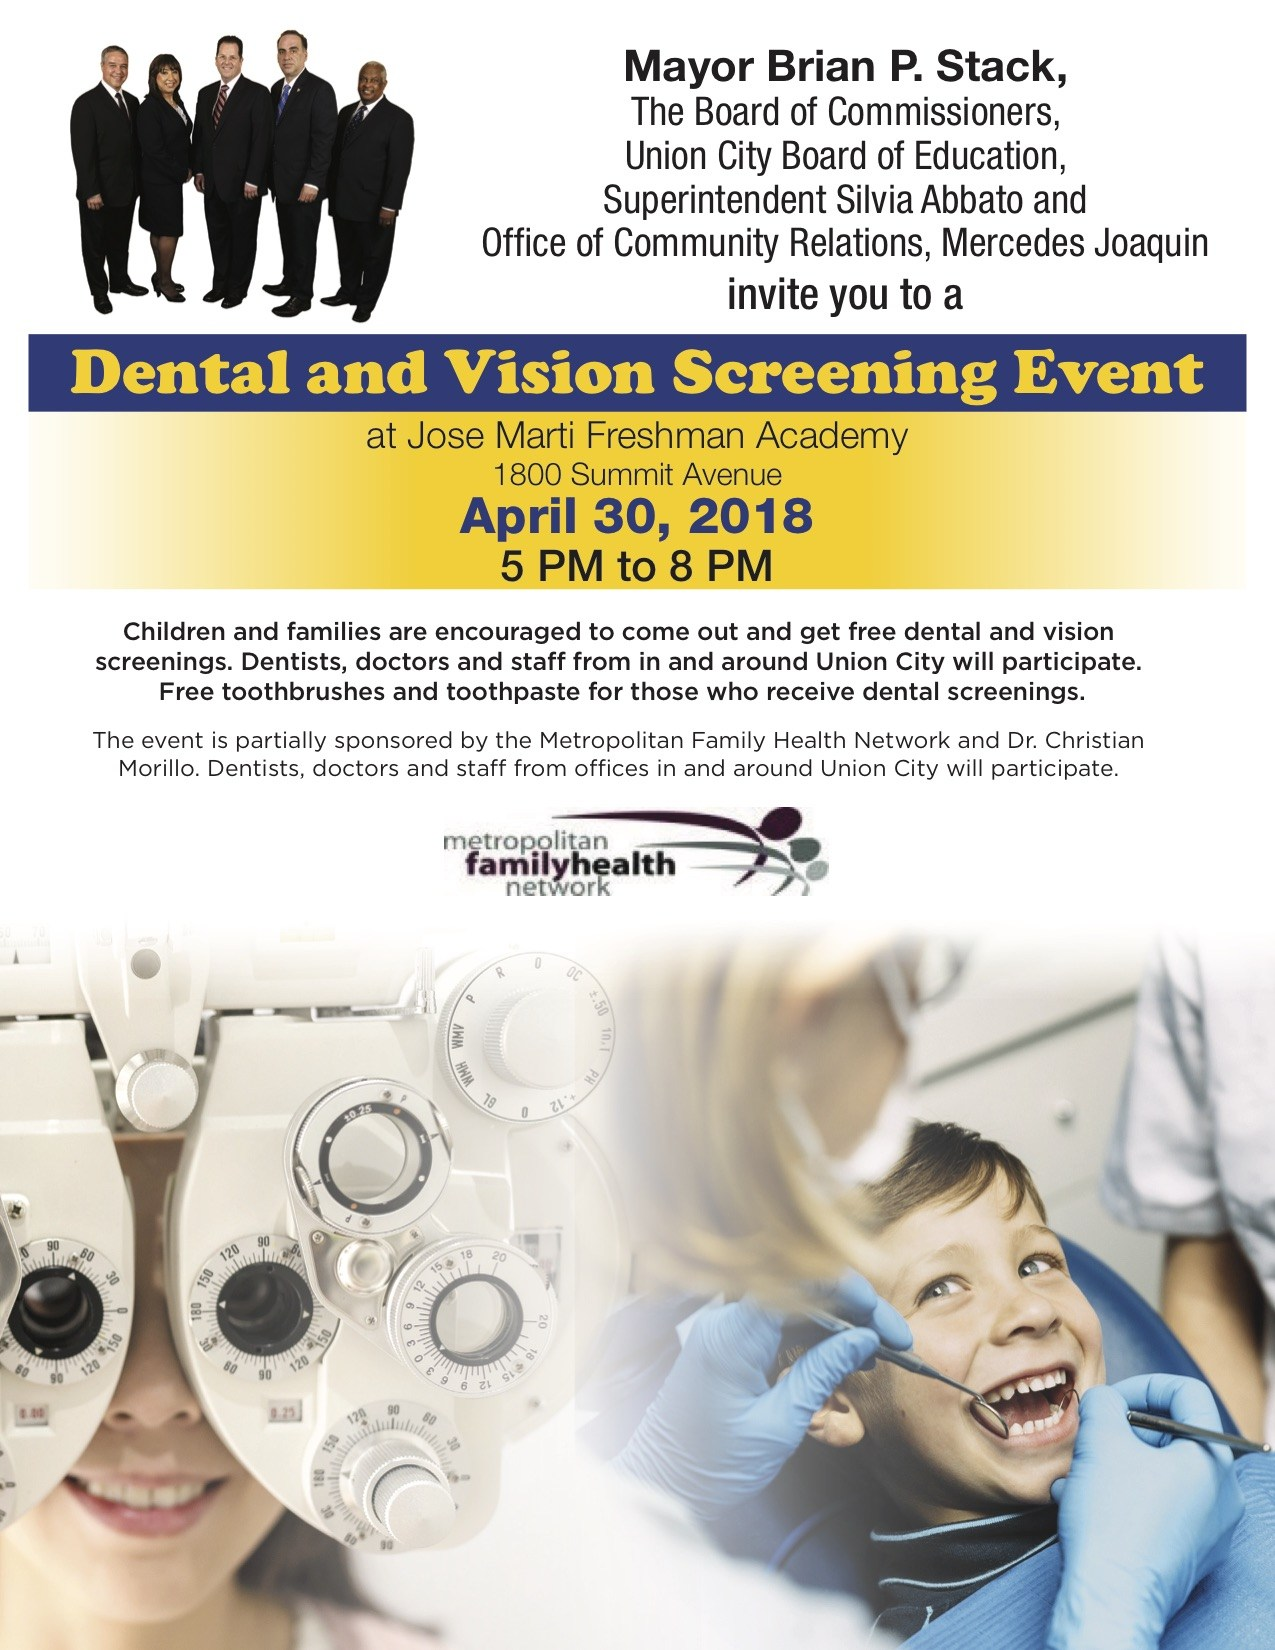 UC Dental & Vision Screening Event flyer